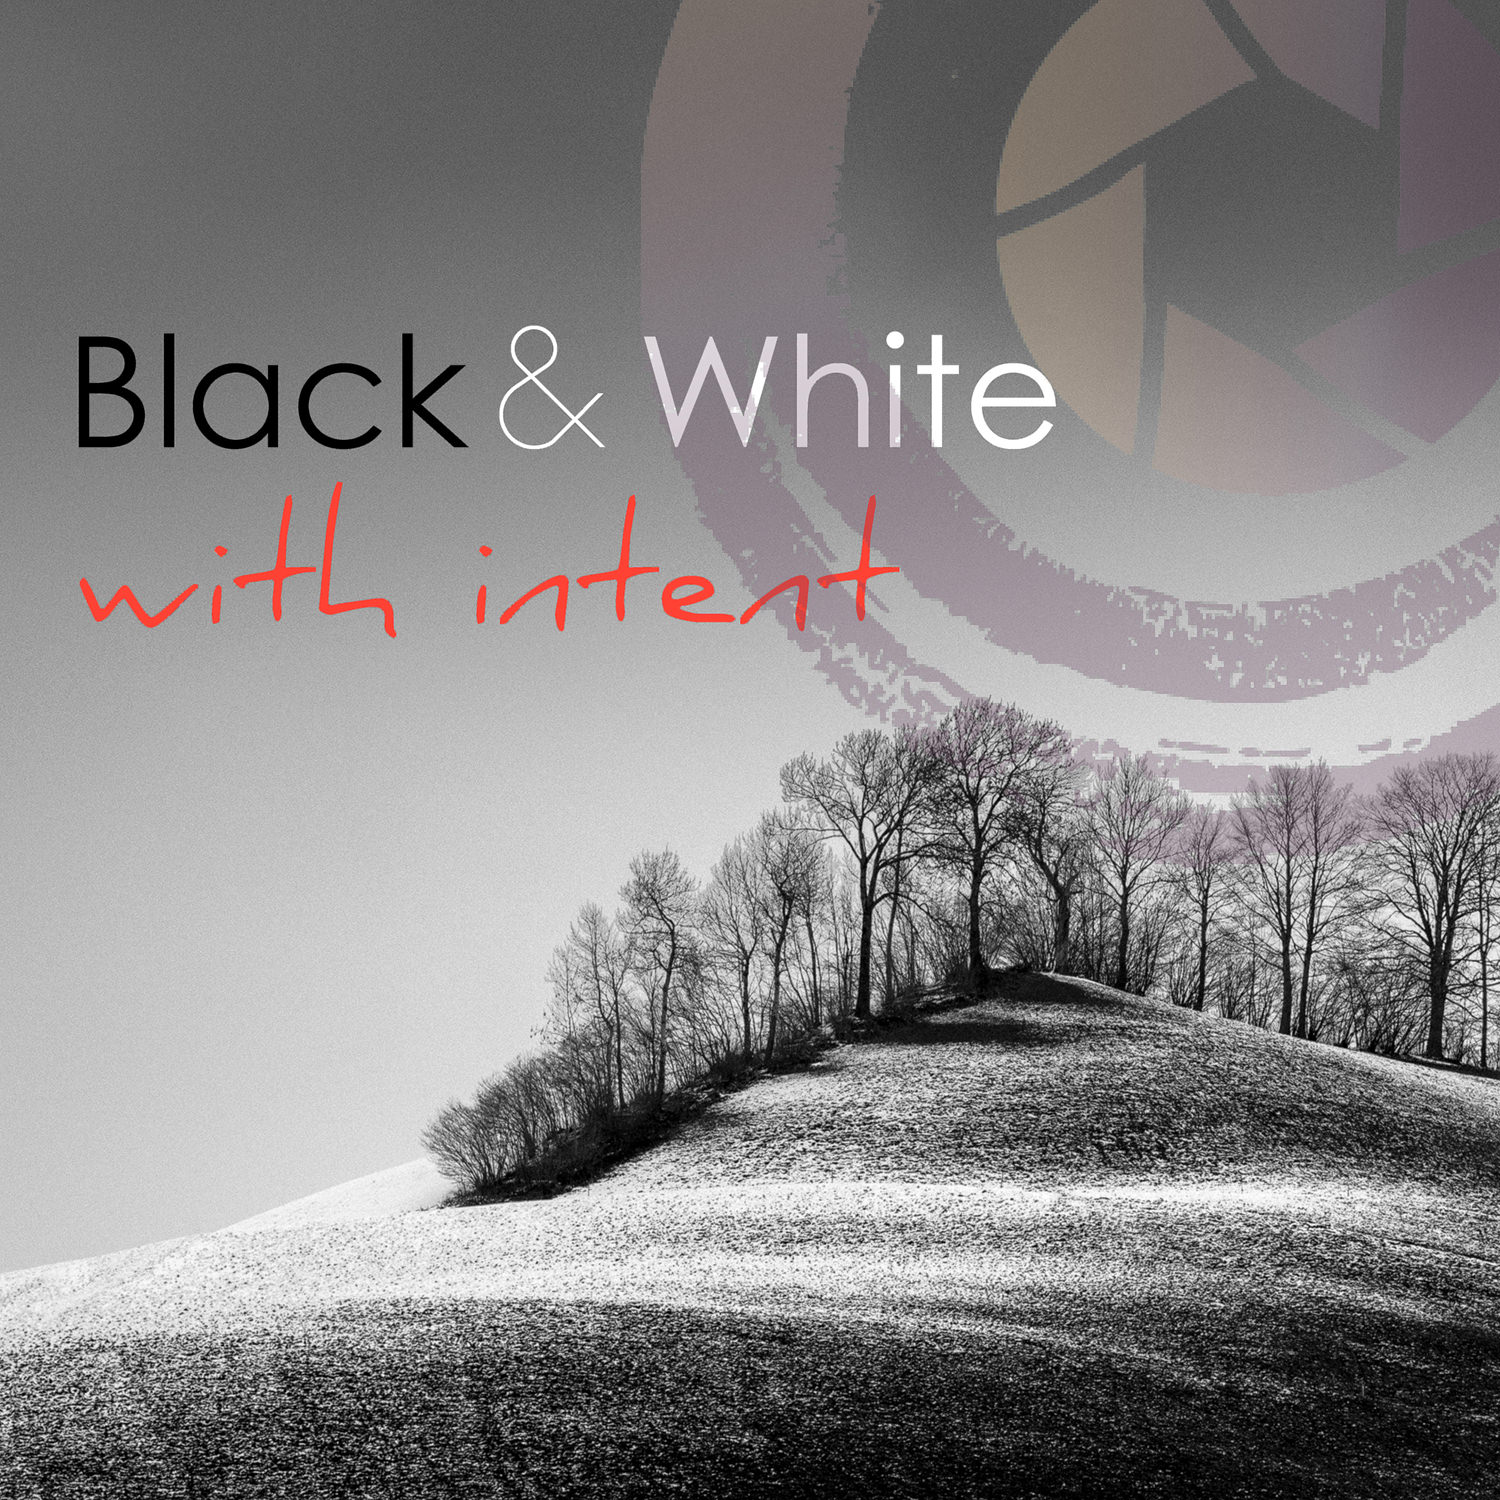 12. BLACK & WHITE WITH INTENT - WRITTEN CONTENT